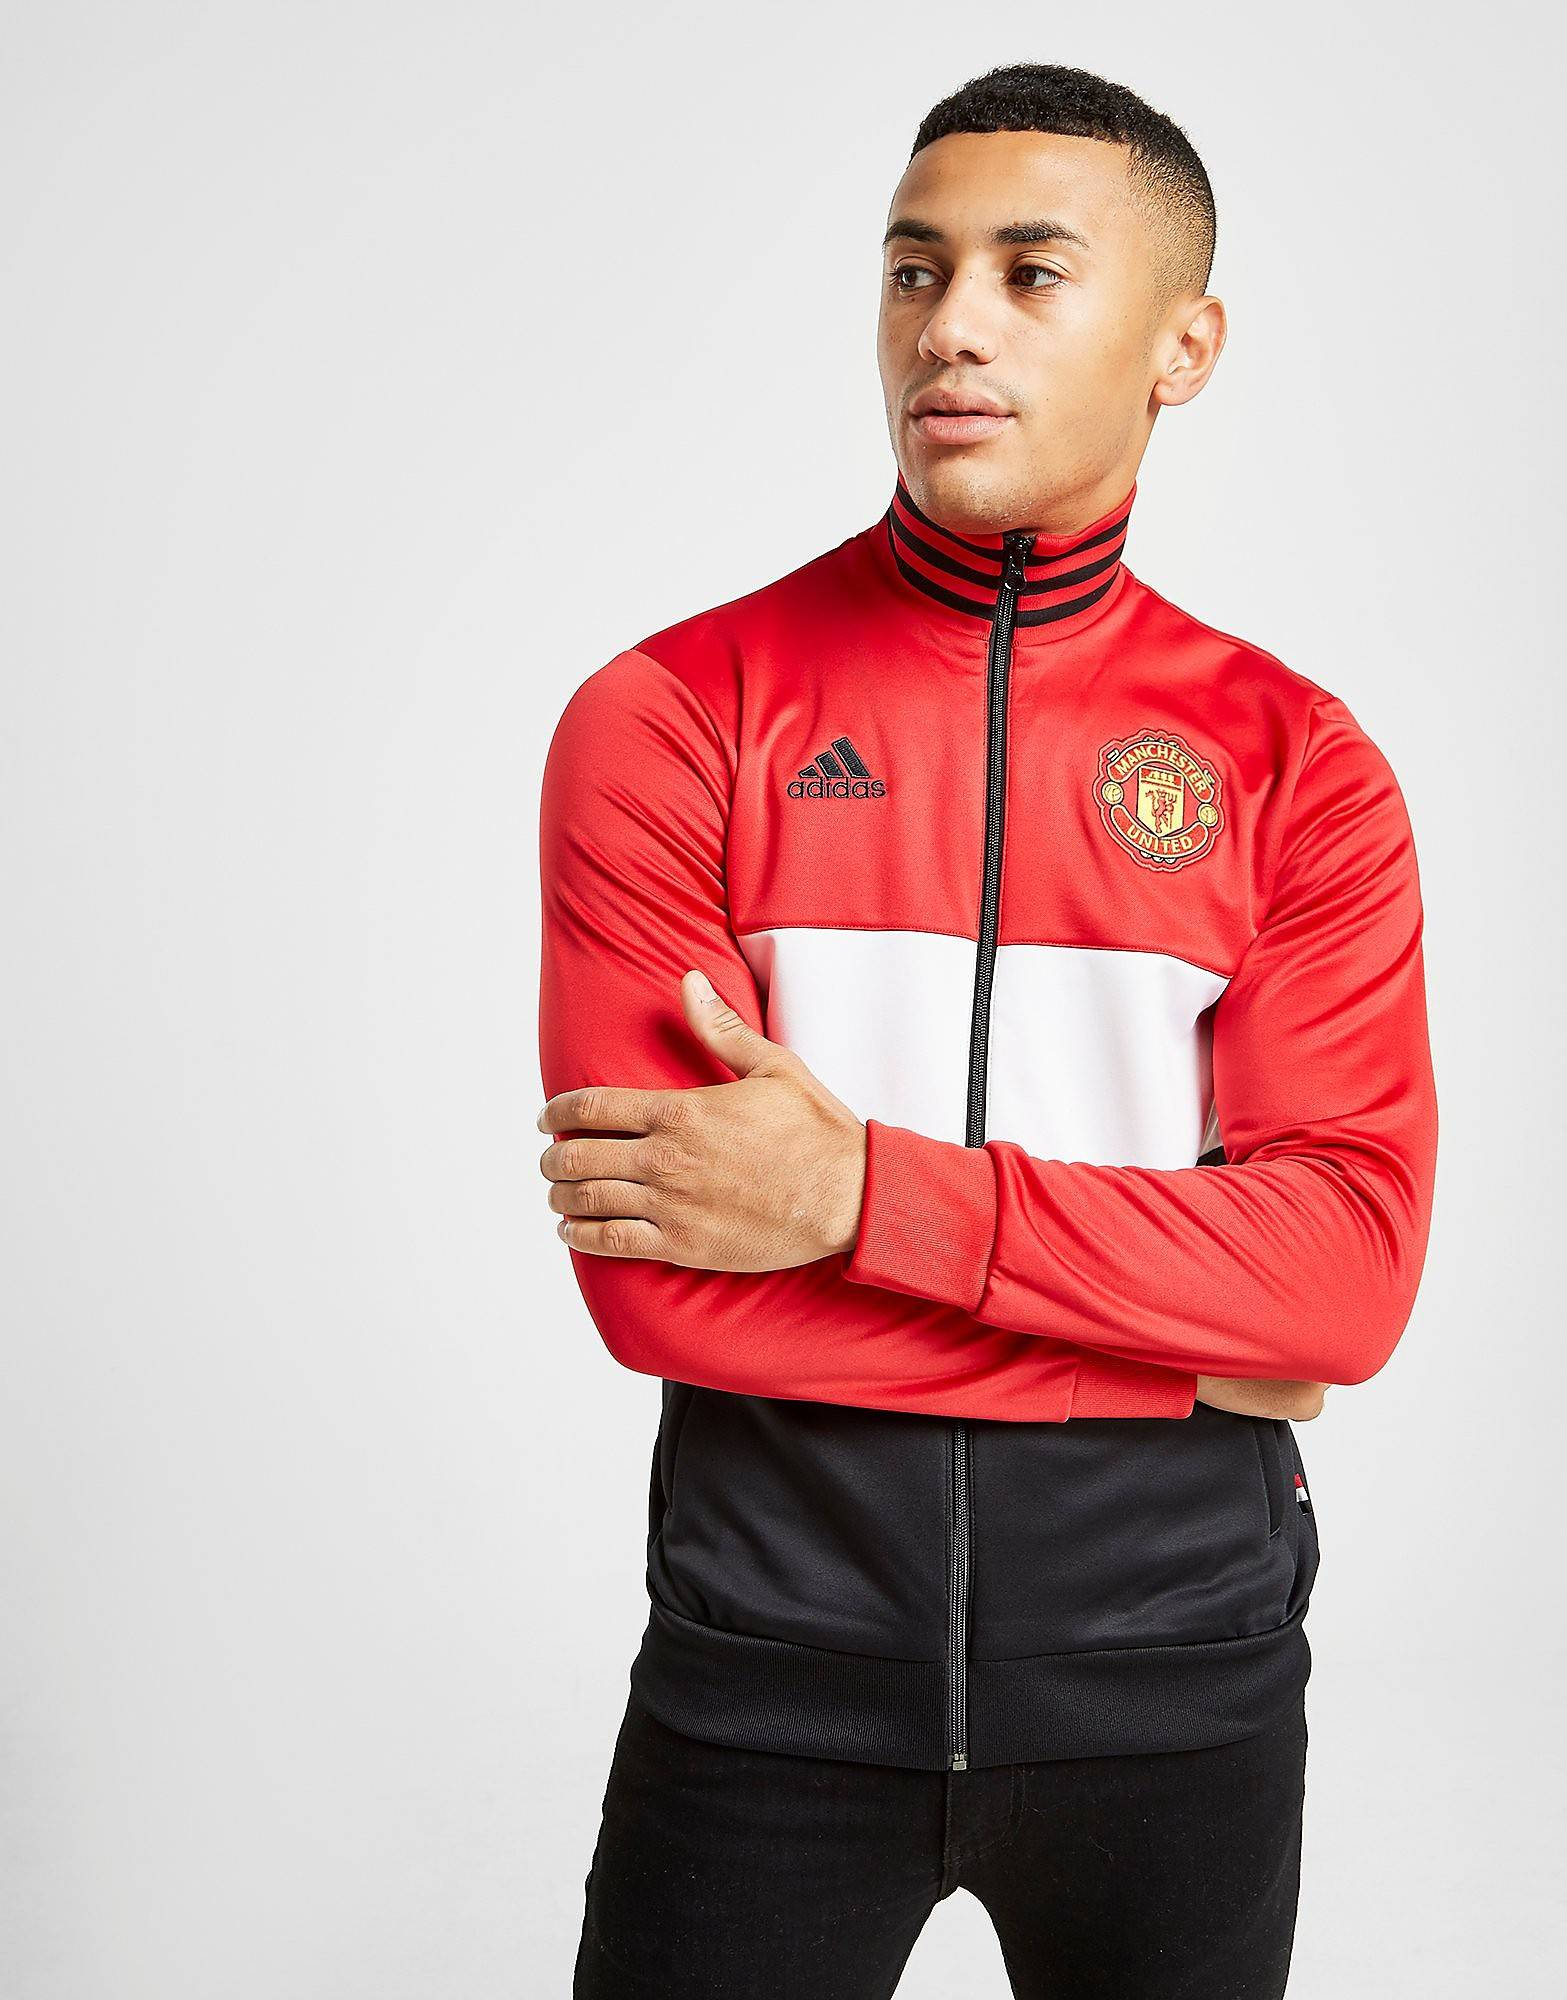 Image of Adidas Manchester United FC 3-Stripes Track Top - Mens, Punainen